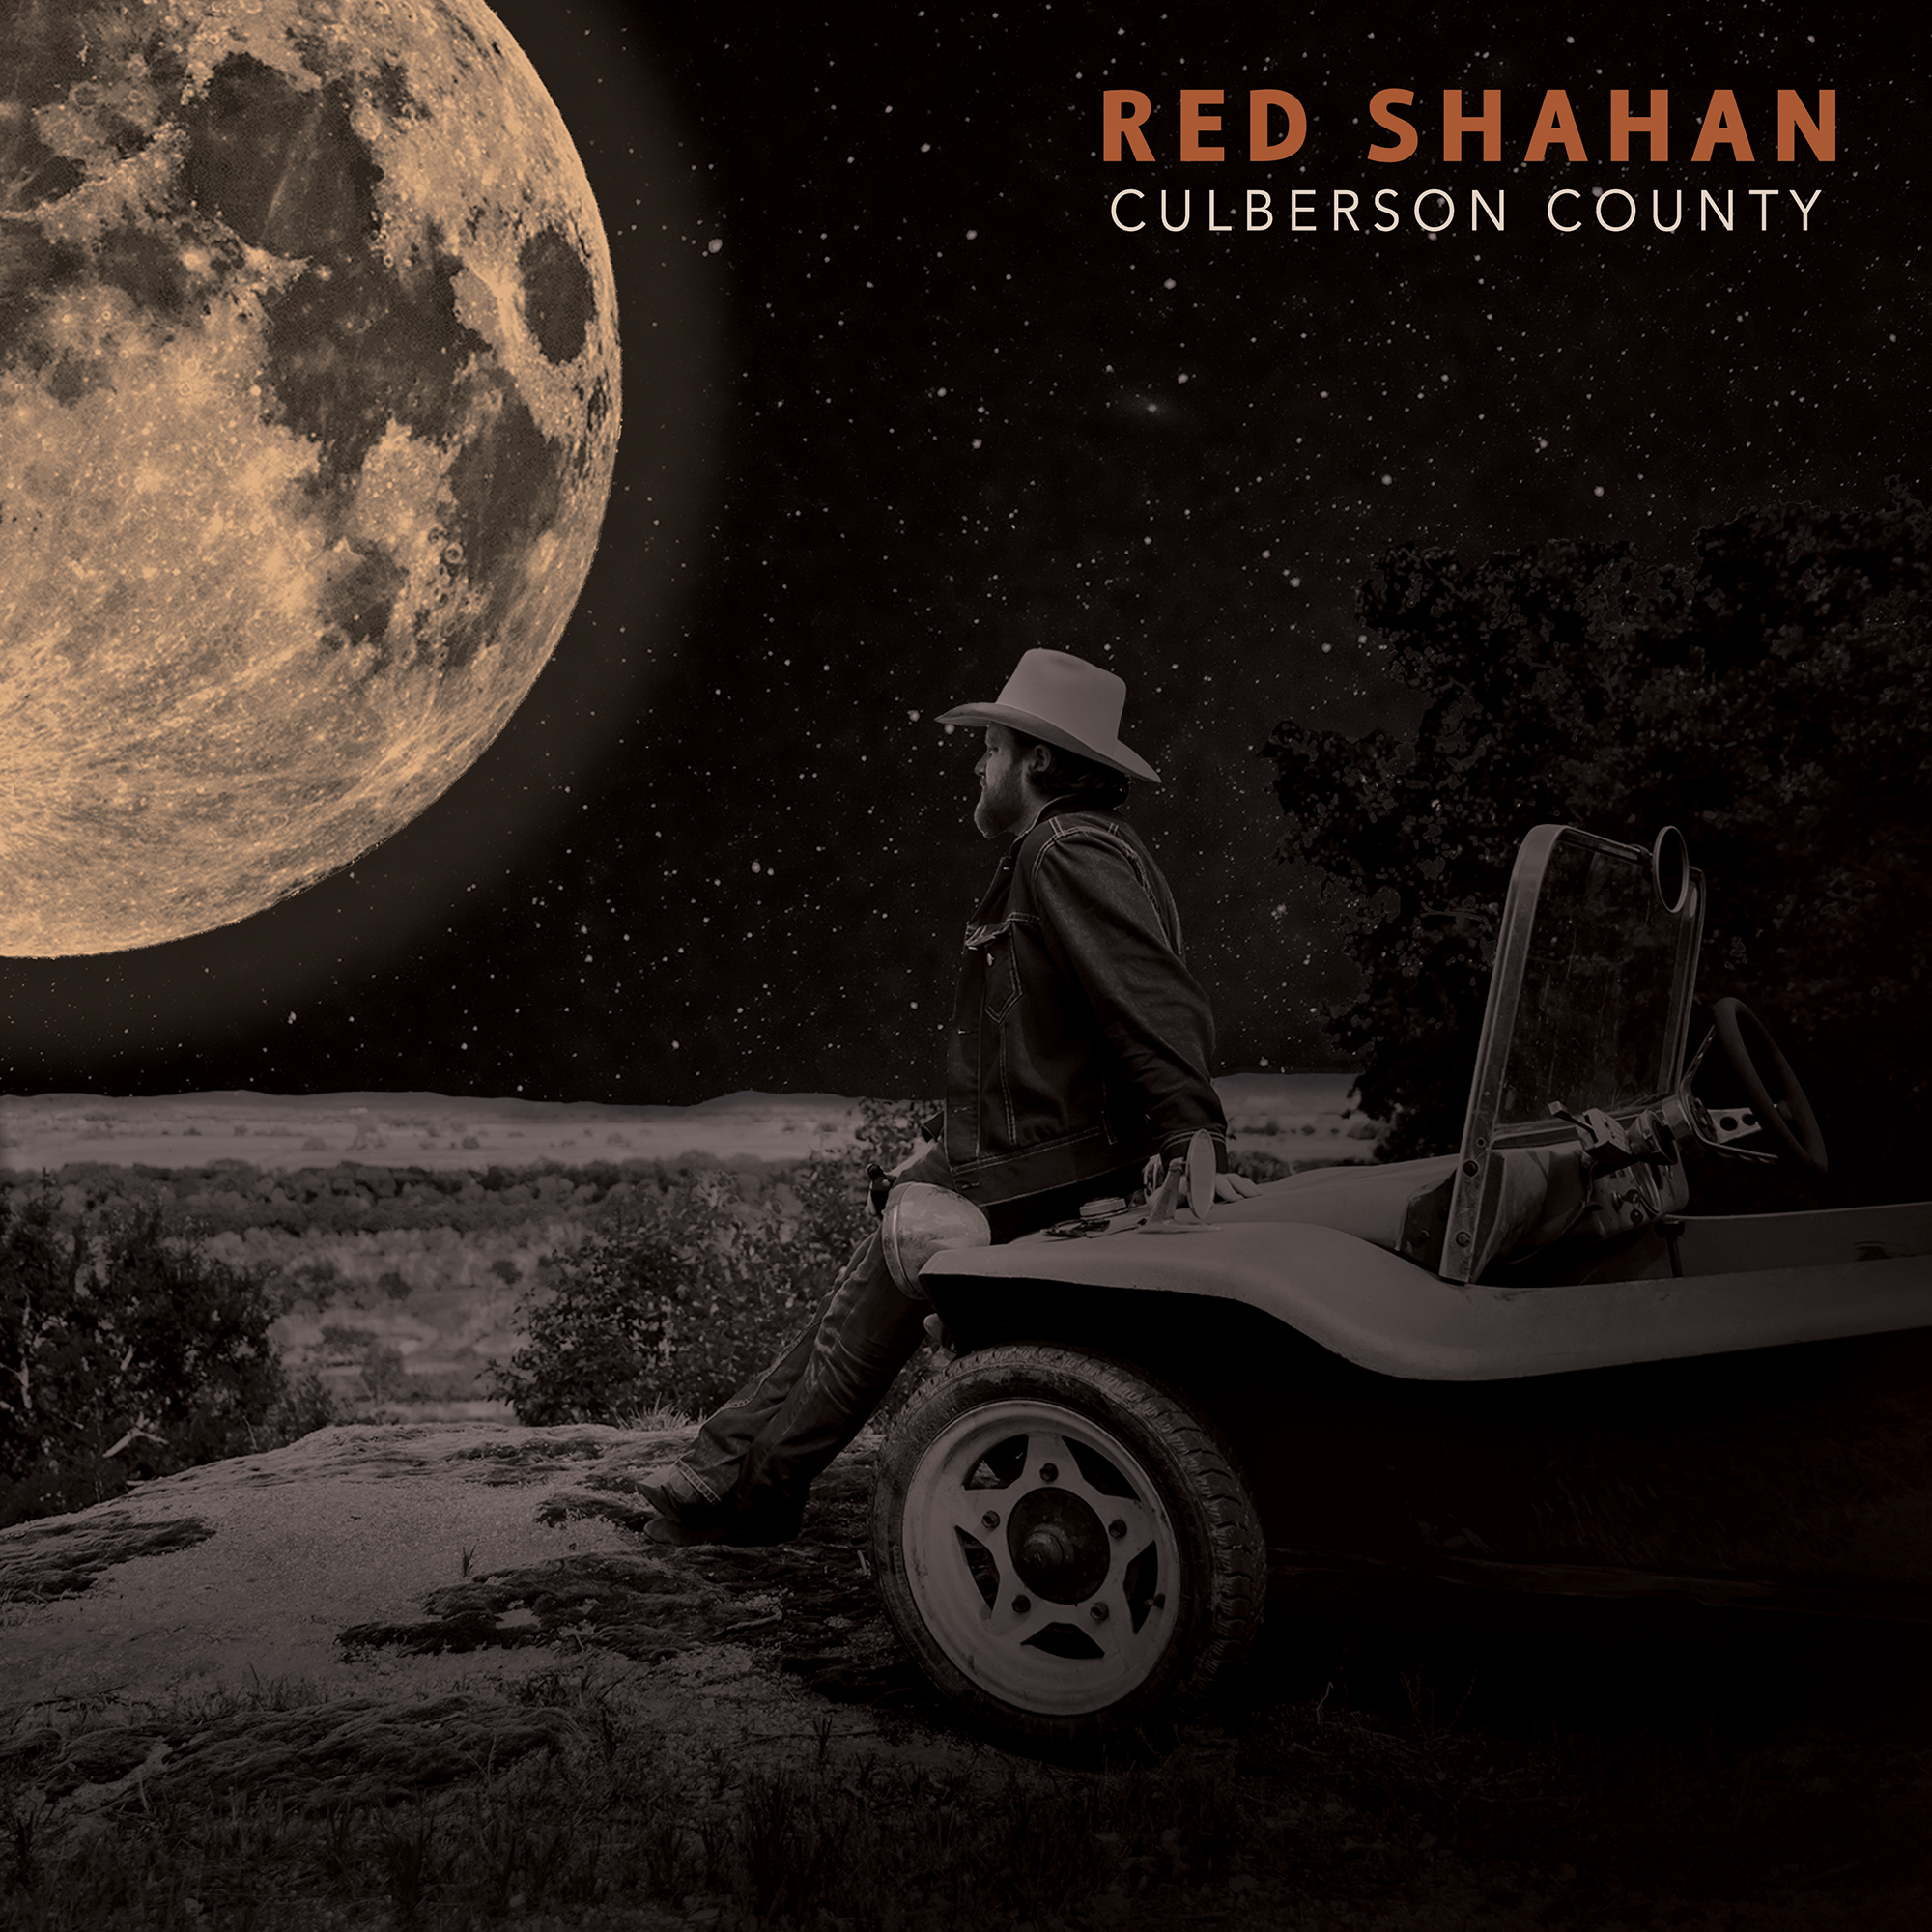 Cover Art for Red Shahan's record Culberson County   Album Artwork by Morgan Avary | Cover Photography by Scott Slusher